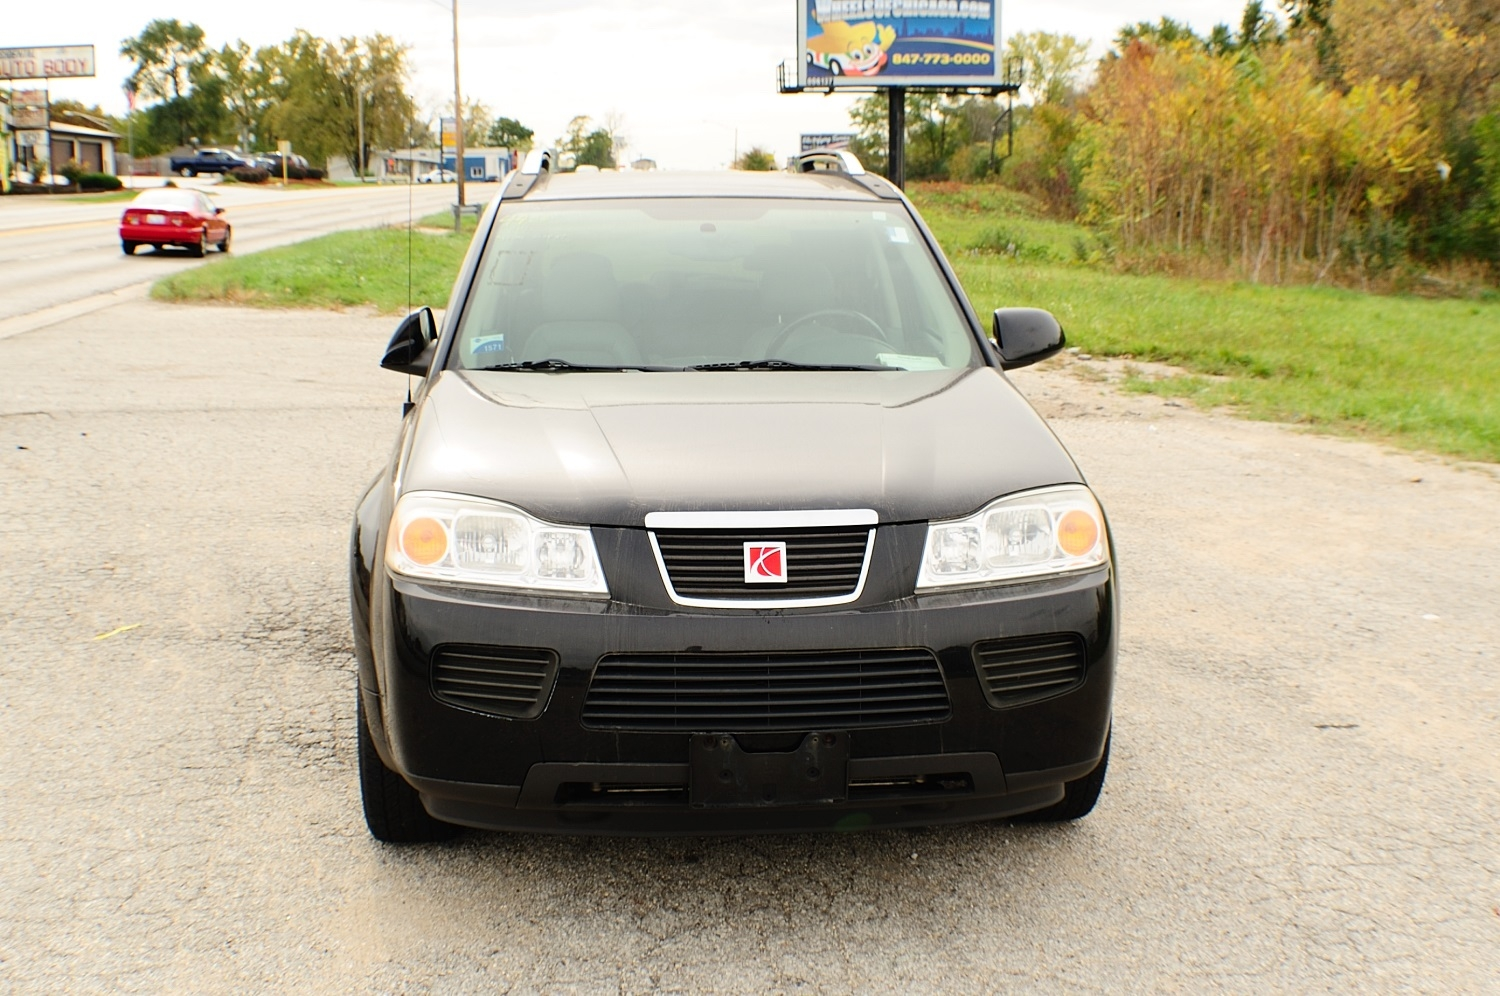 2006 Saturn Vue Black 4x2 Used SUV Used Car Sale Gurnee Kenosha Mchenry  Chicago Illinois